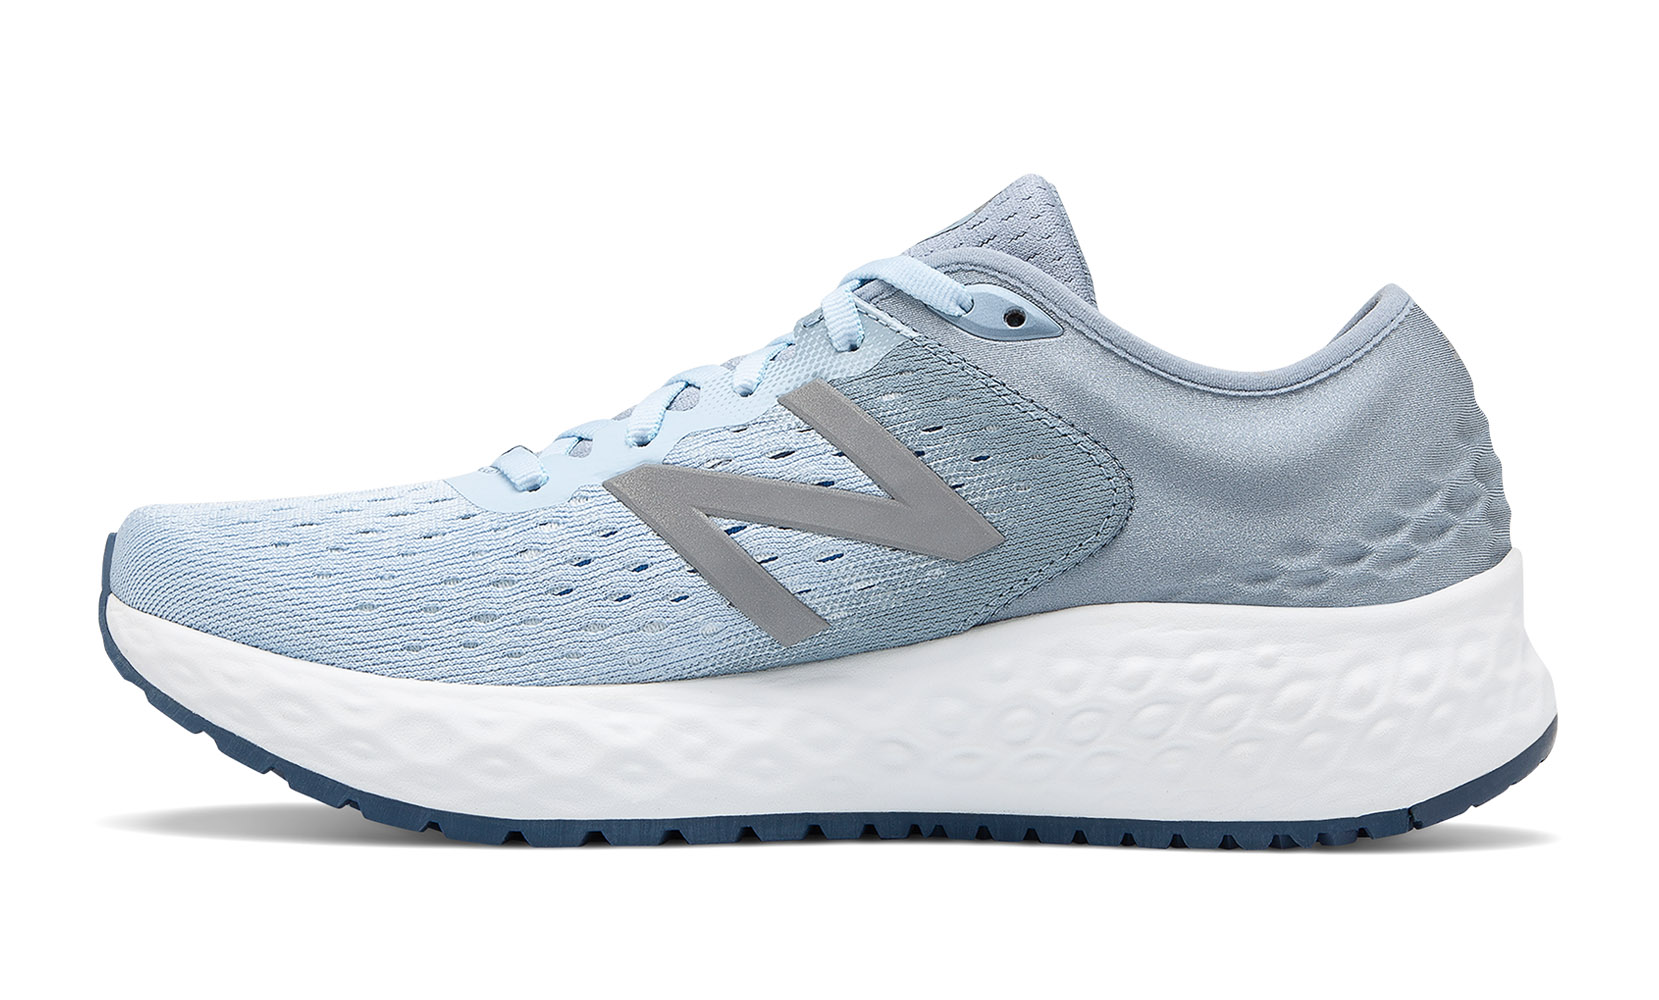 Жіноче взуття для бігу New Balance Fresh Foam 1080v9 W1080AB9 | New Balance